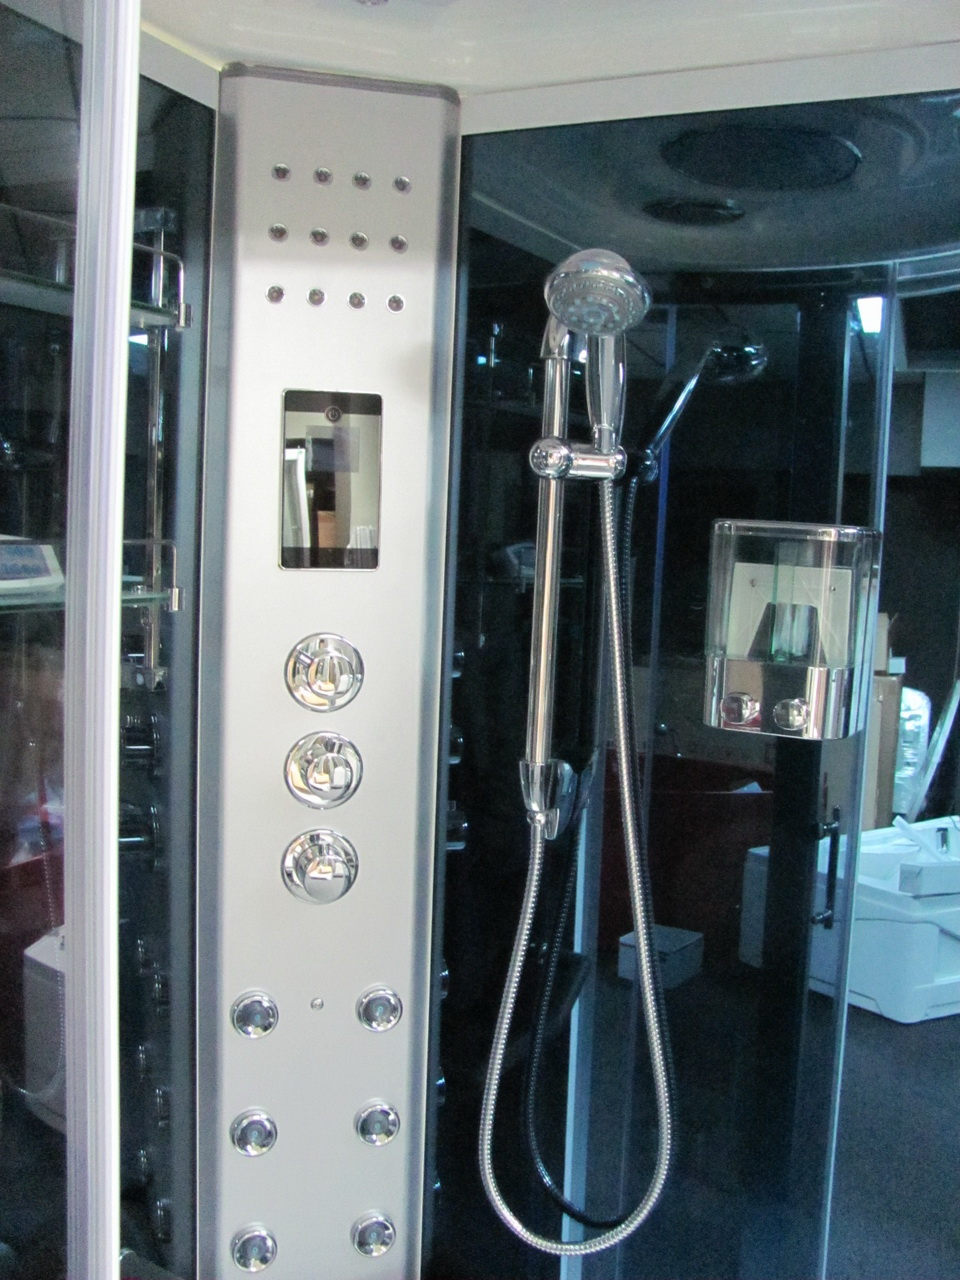 Steam Shower Room With Aromatherapy And Thermostatic Faucet